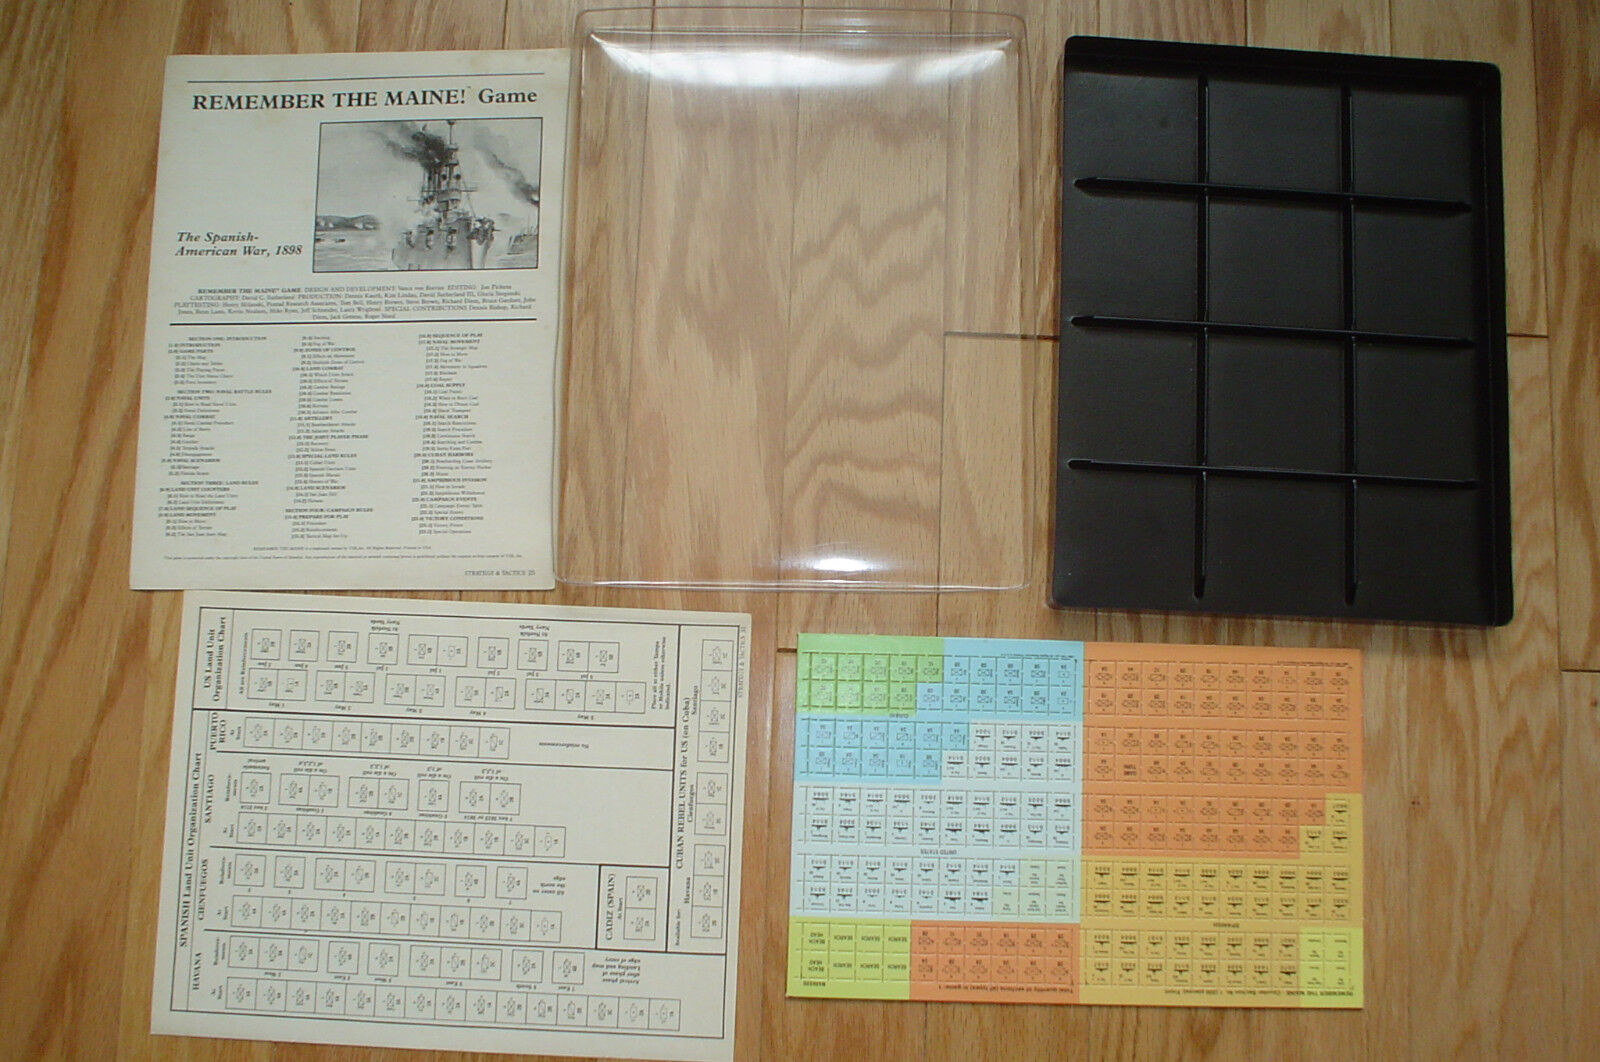 REMEMBER THE MAINE War gioco By TSR - 1986  - UNPUNCHED  prezzo all'ingrosso